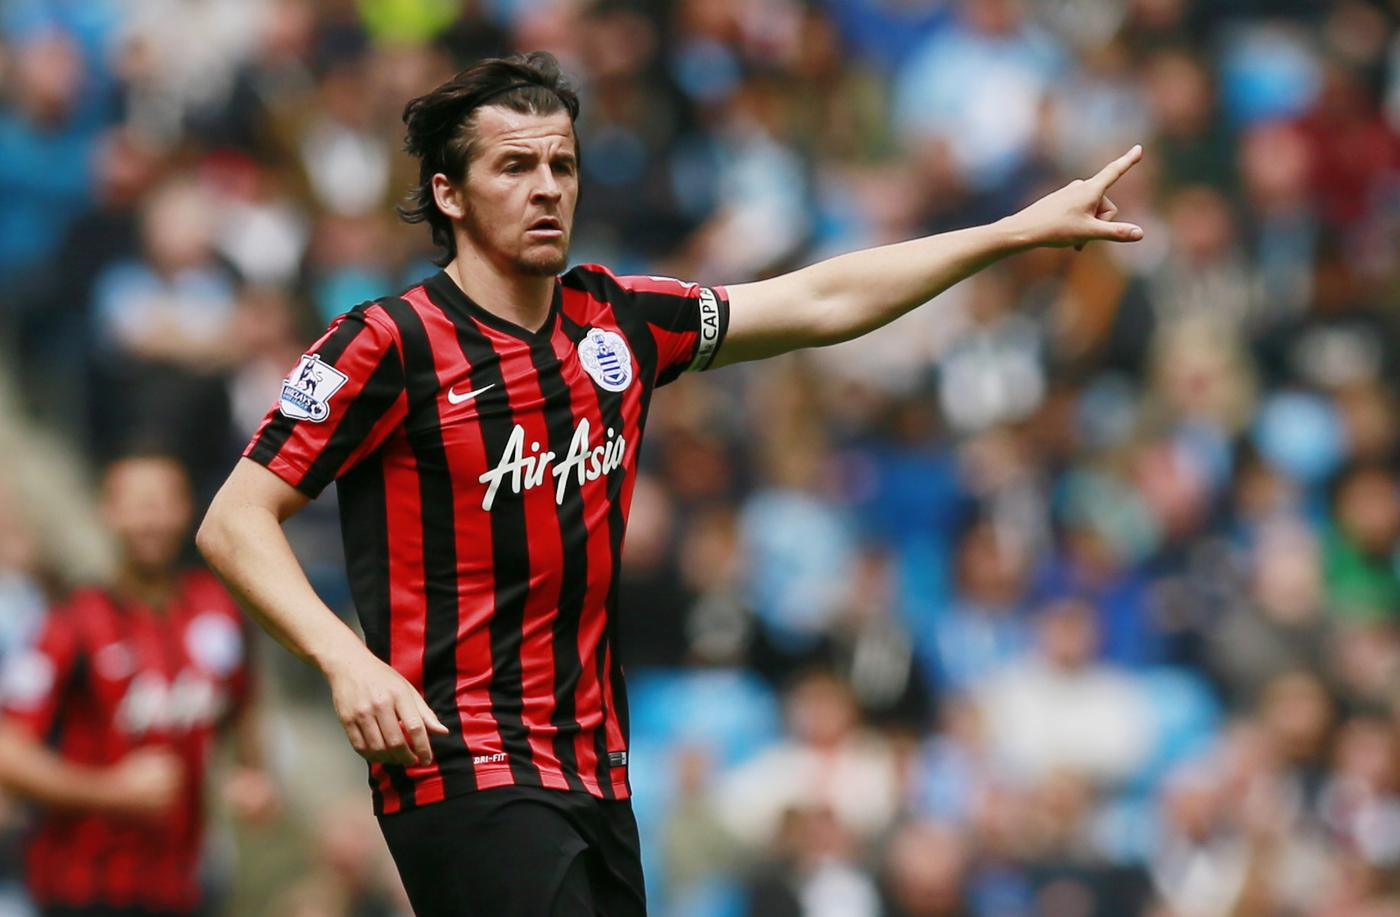 'The problem would be funding Joey's Ferrari' – Rotherham admit they have 'zero chance' of signing Barton